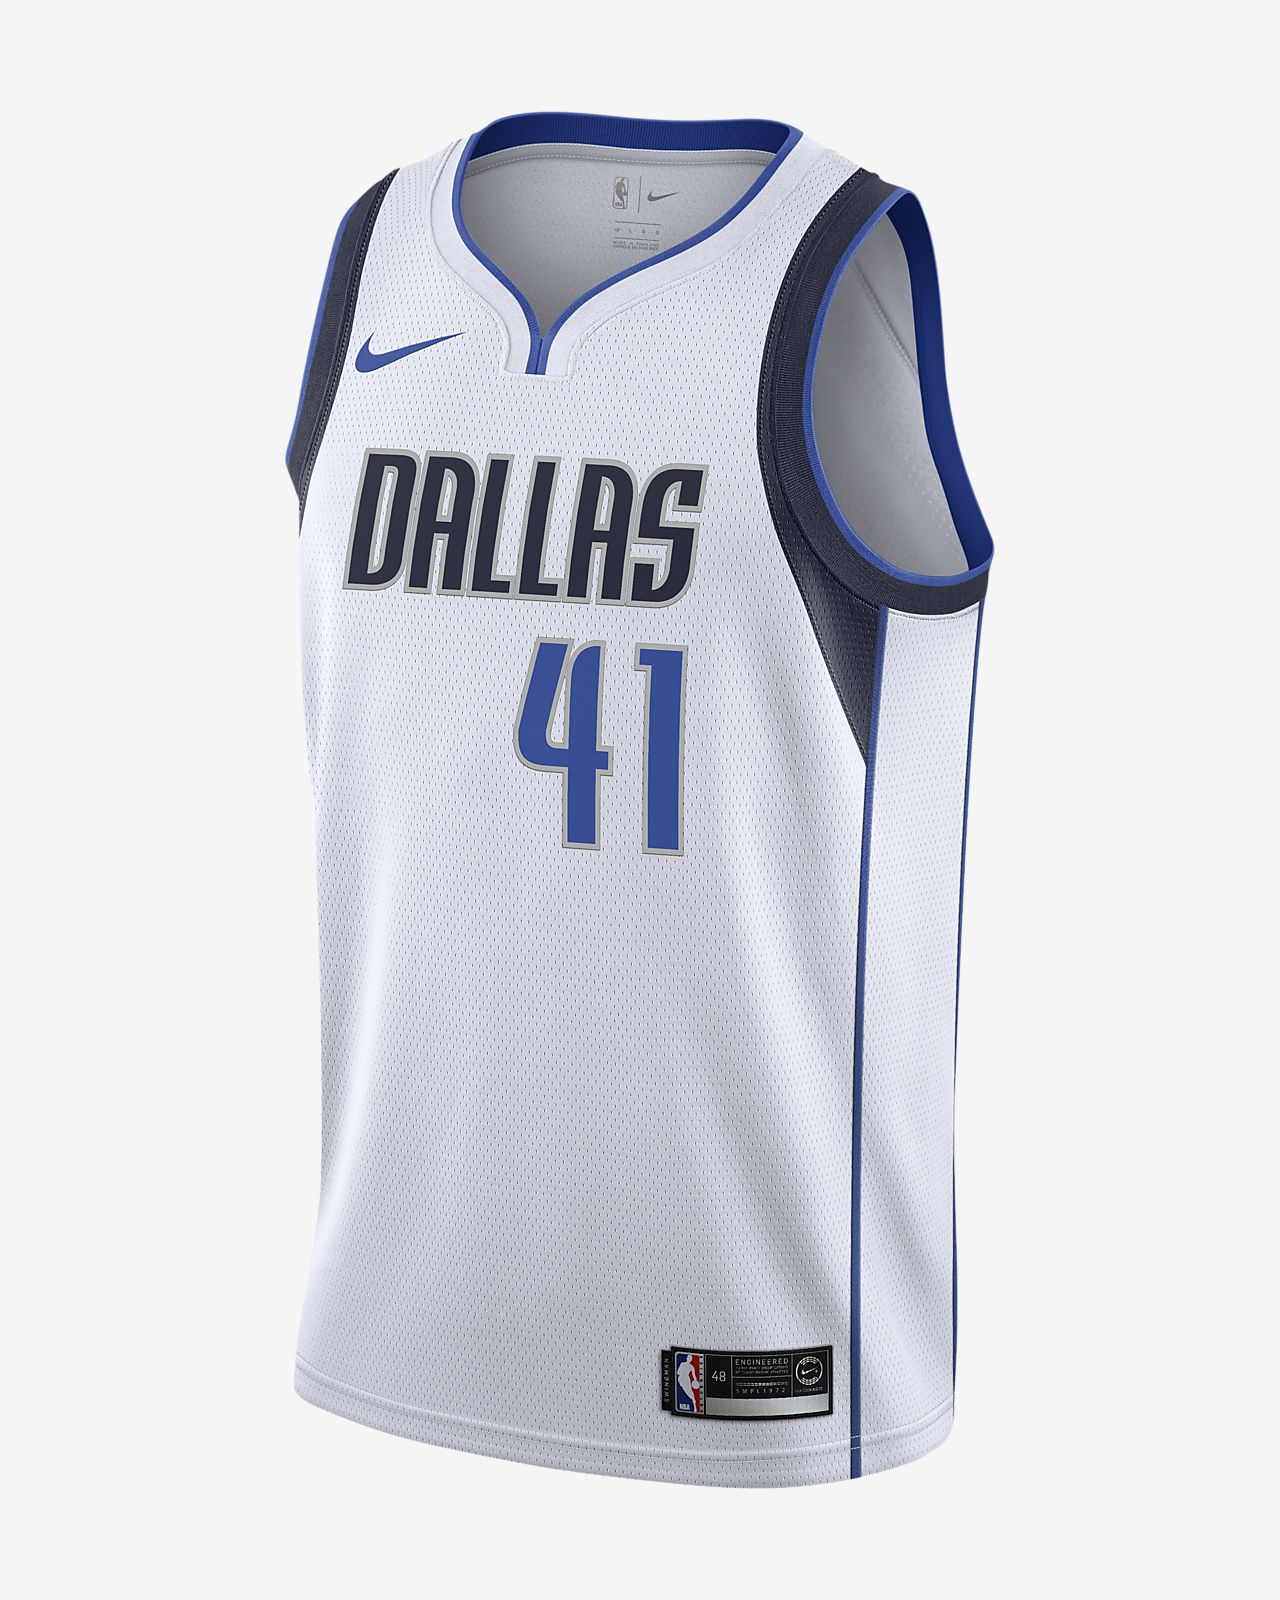 24589ae9f Men s Nike NBA Connected Jersey. Dirk Nowitzki Association Edition Swingman  Jersey (Dallas Mavericks)